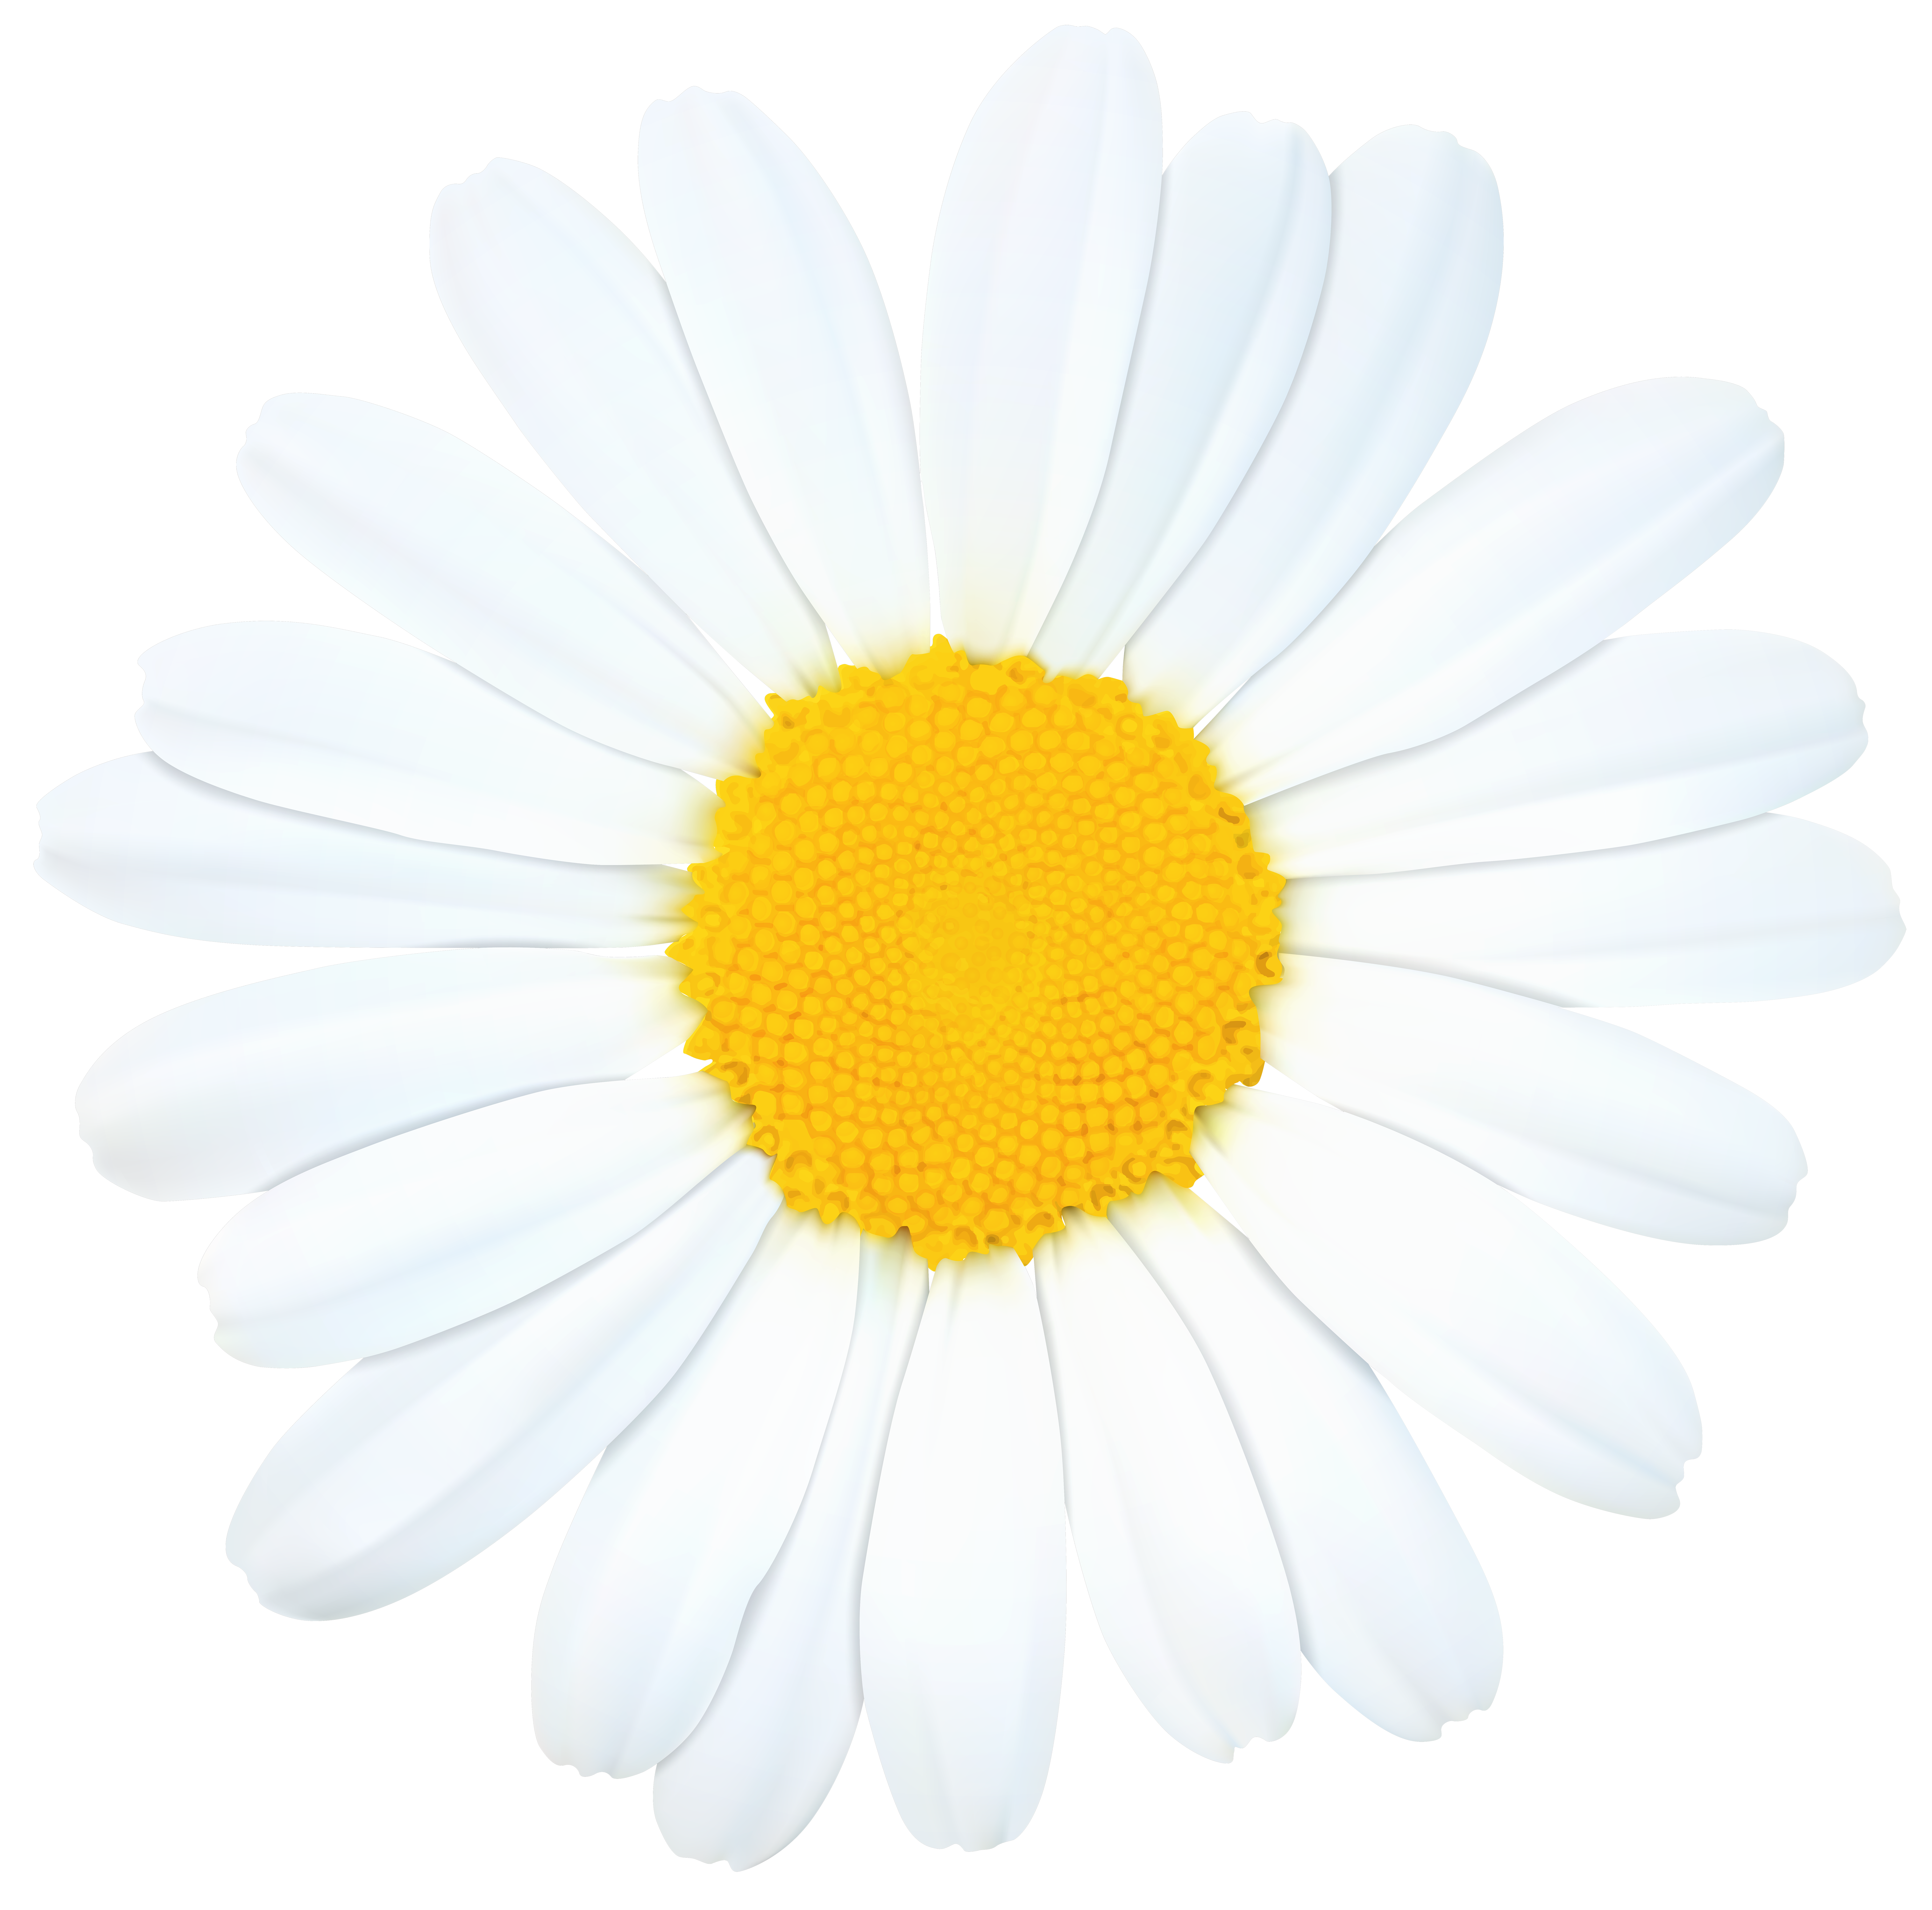 Daisy png clip art. Daisies clipart silhouette picture freeuse download